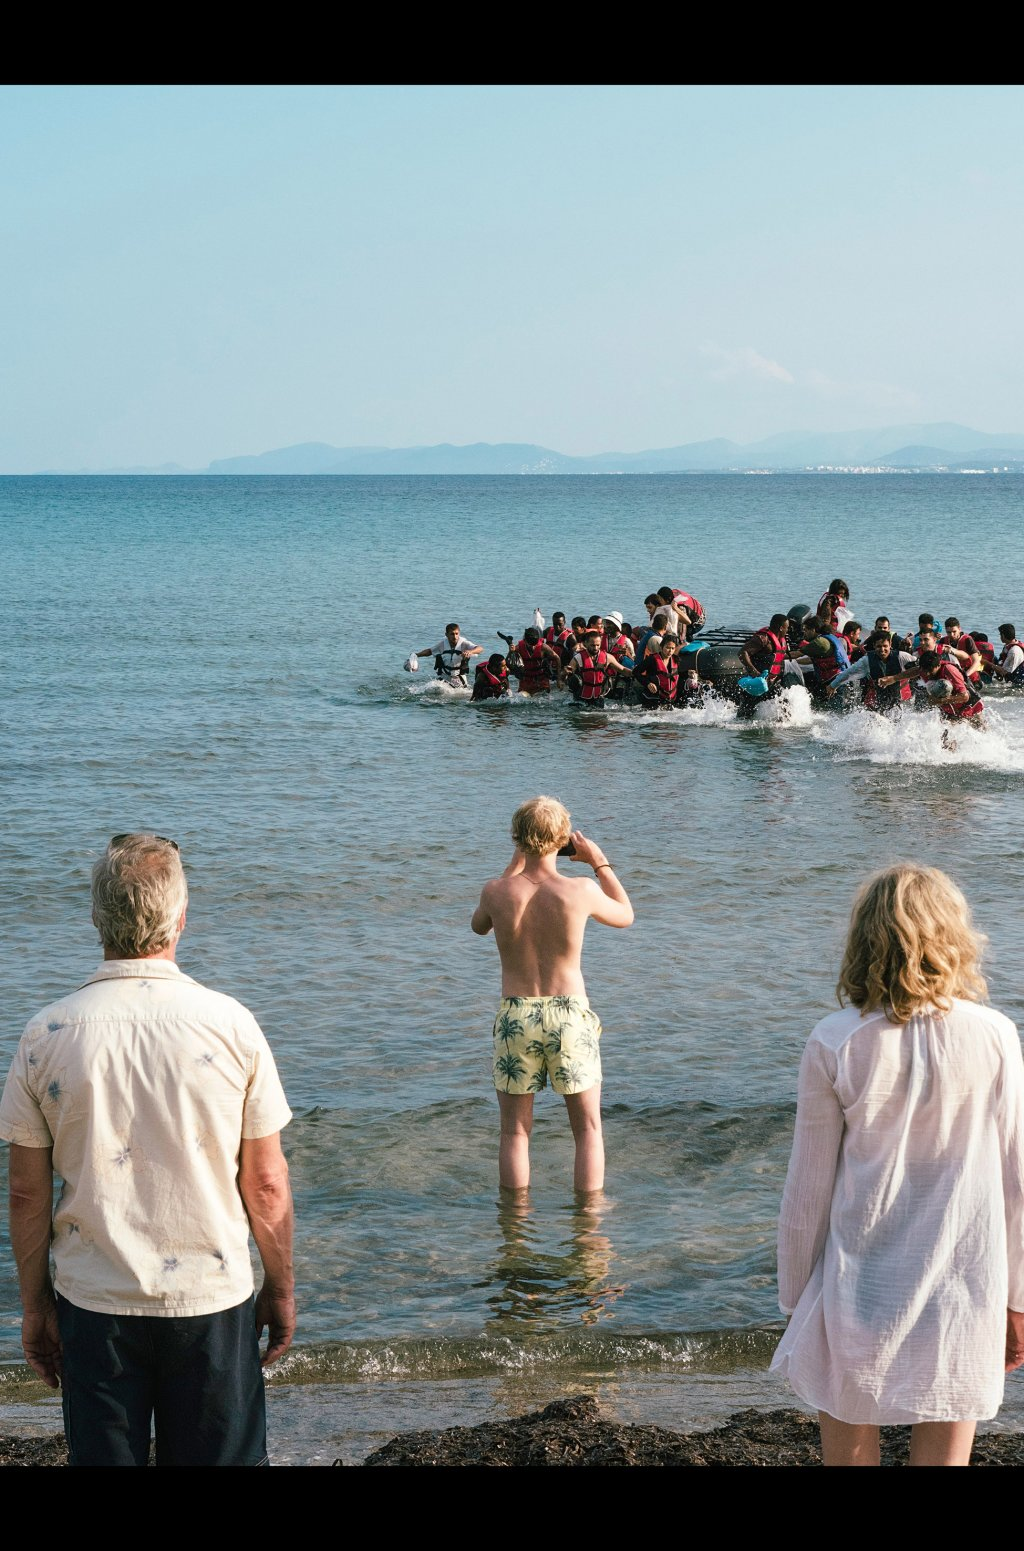 The Hennings family stop and watch as migrants literally arrive on their holiday beach  Credit Screenshot from Arte production Eden  SWRPierre Meursaut